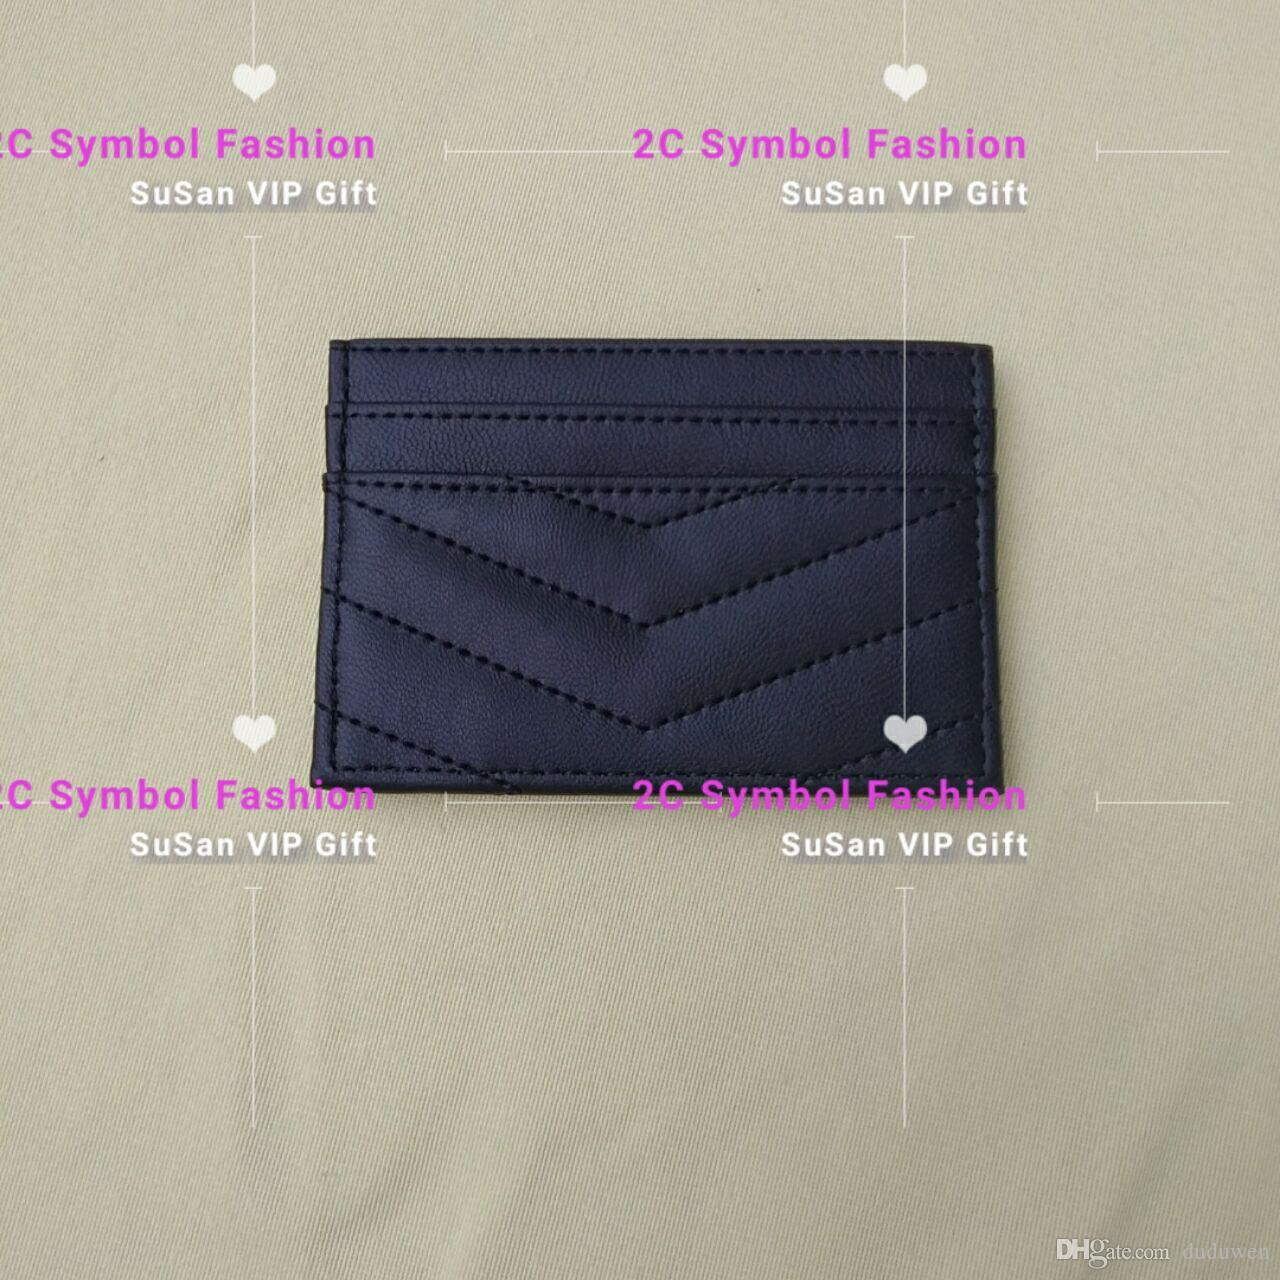 Striped pattern fashion brand mini wallet ID card holder fashion store bag counter gift plastic bag